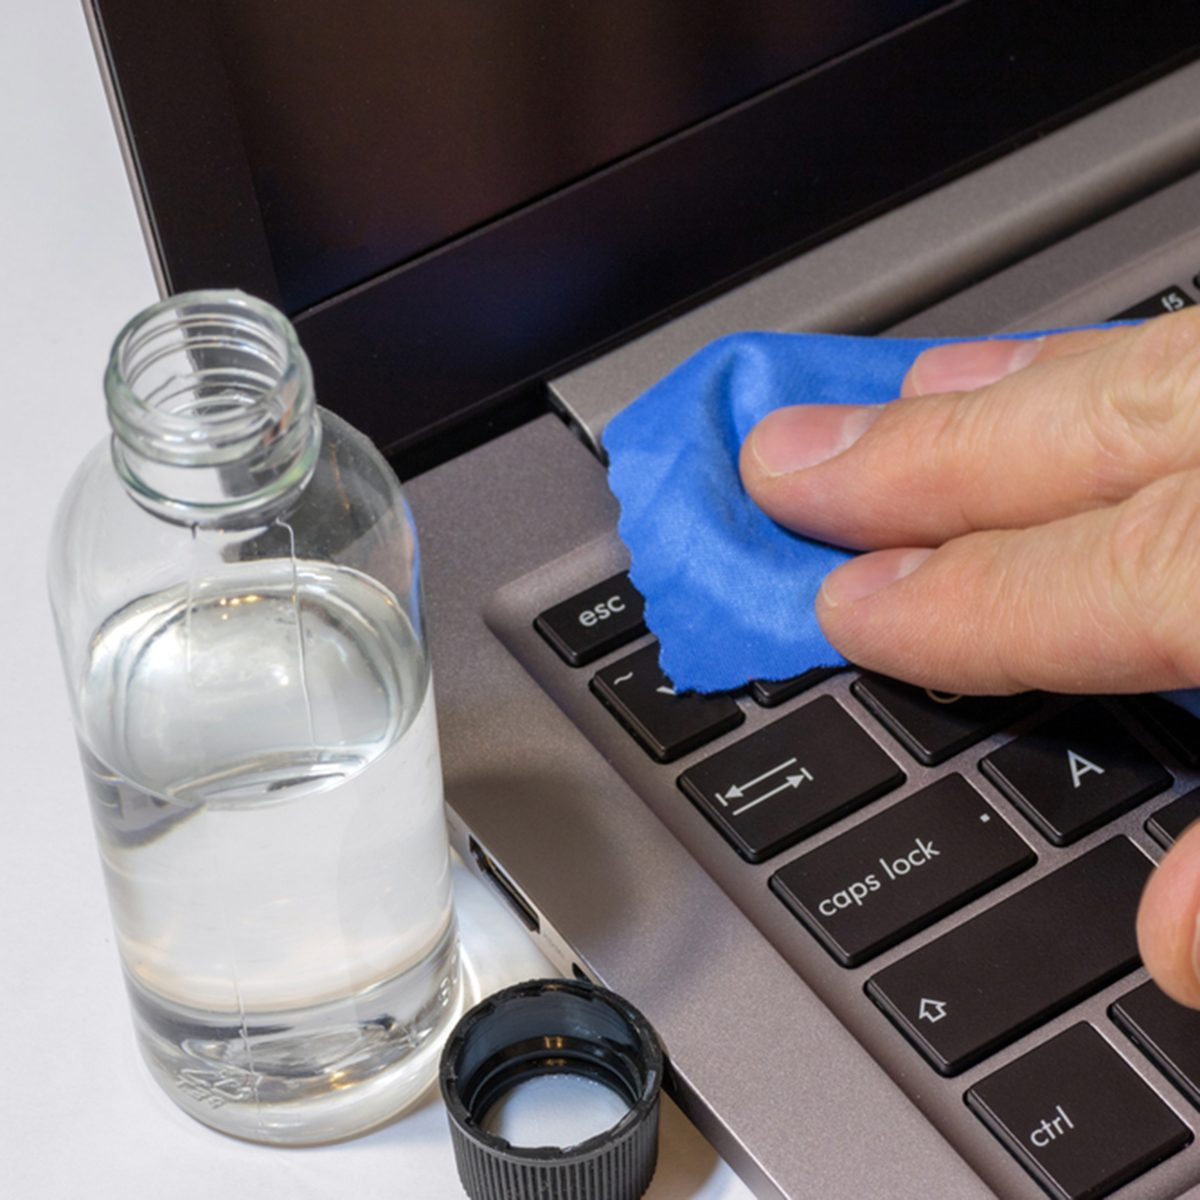 Cleaning the surface of keyboard laptop with a blue rag microfiber